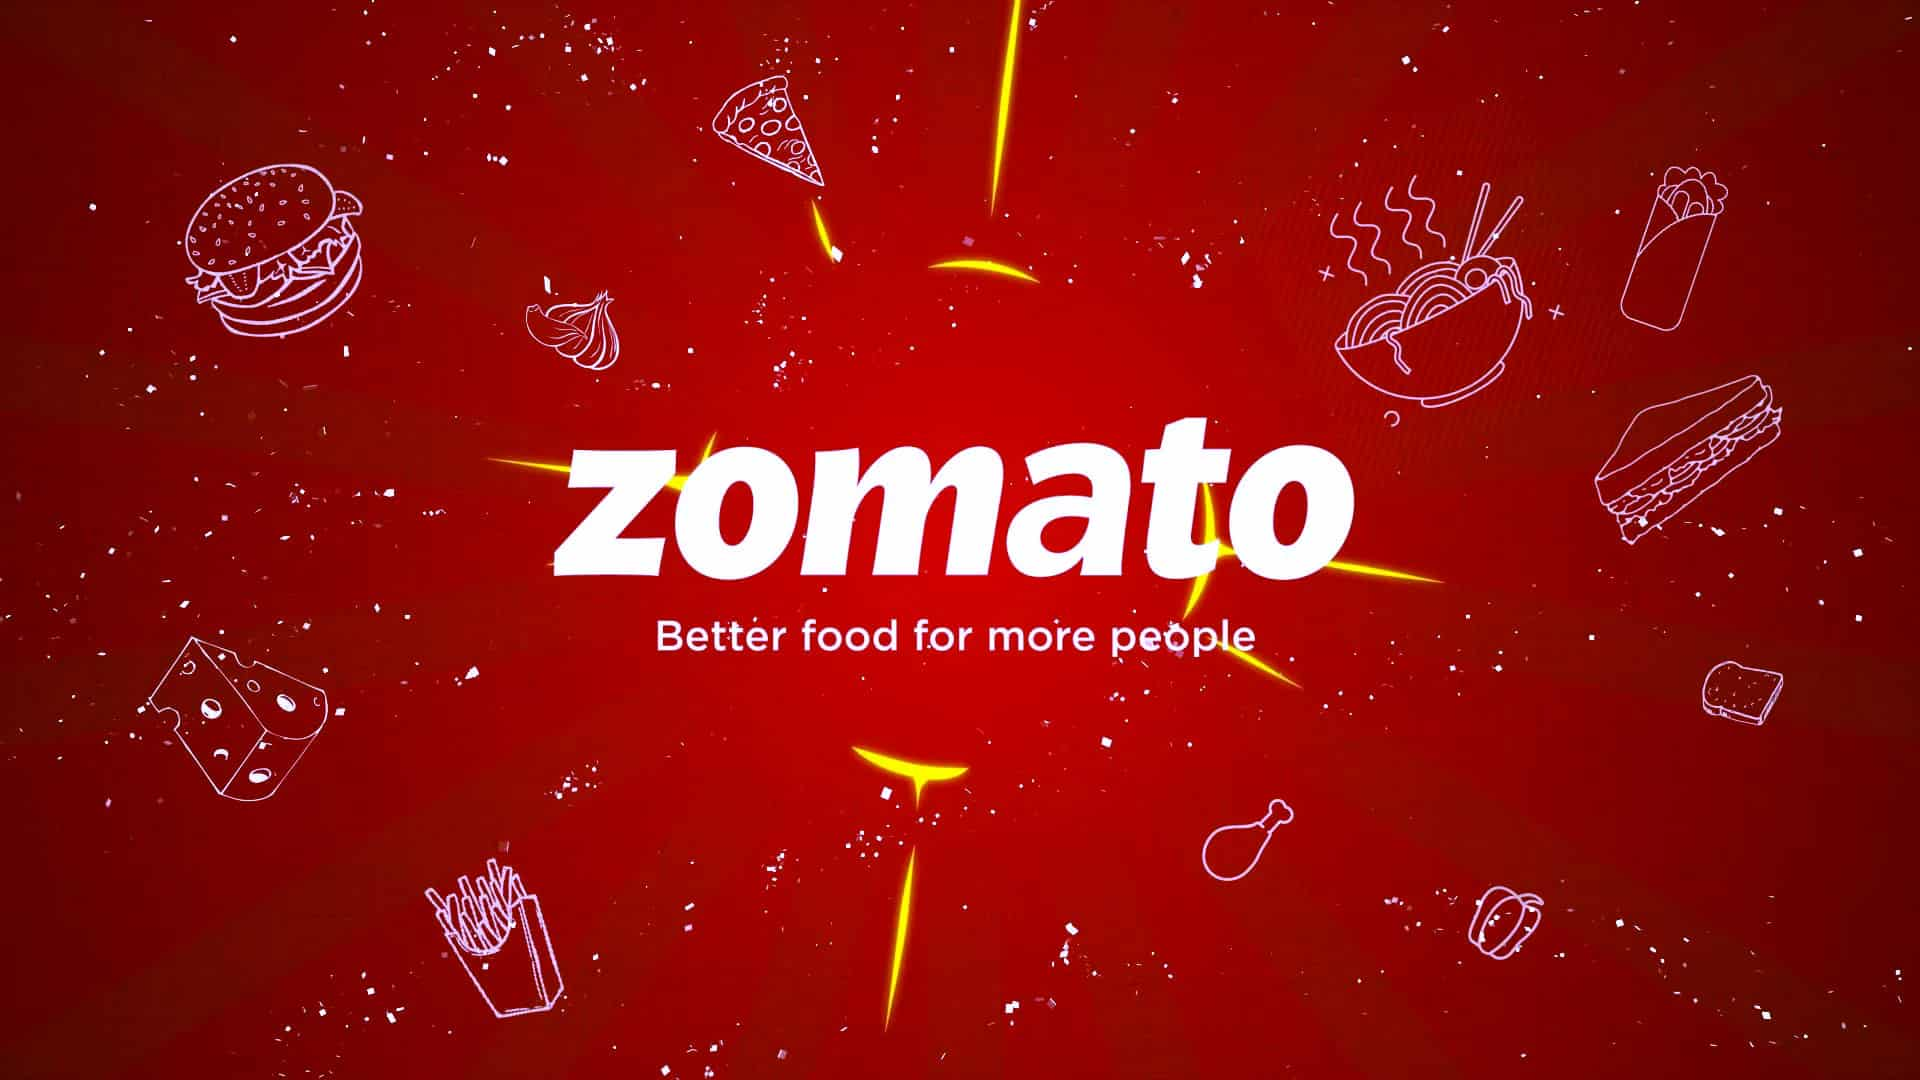 Zomato raises $250mn in funding from Tiger Global, Kora and others